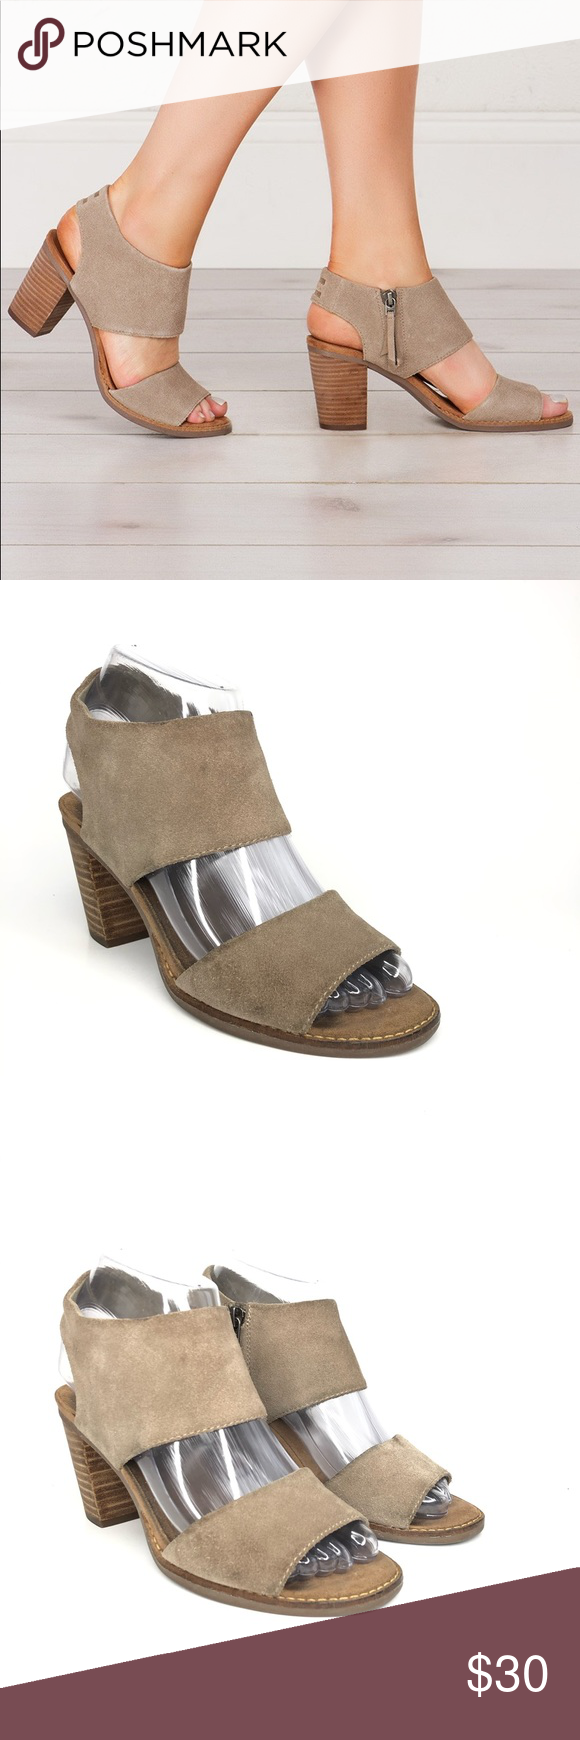 TOMS Majorca Cutout Suede Sandal Heel Desert Taupe Every warm weather outfit nee…